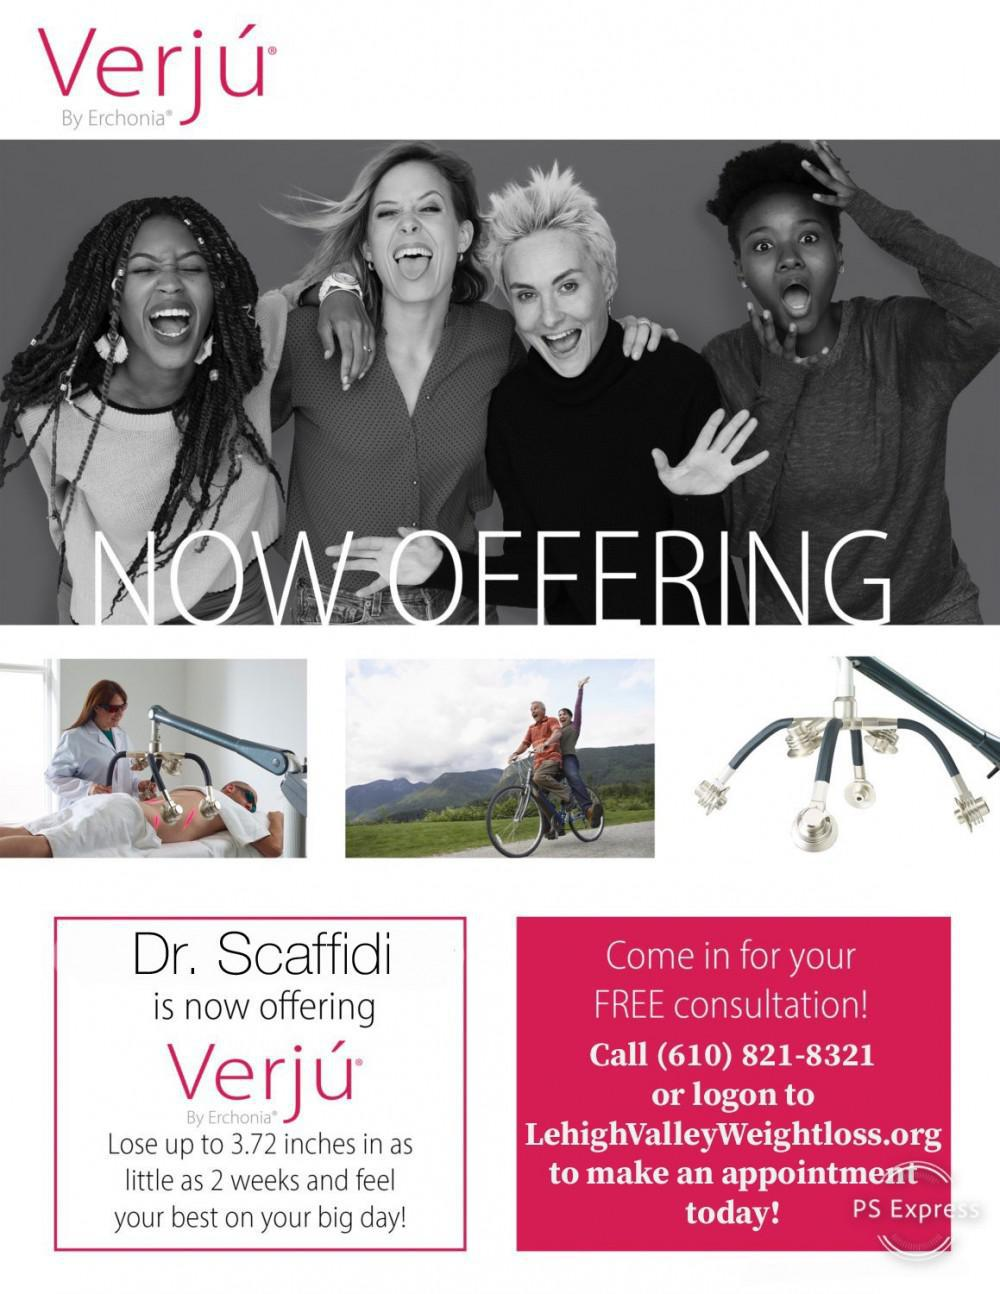 Verju Body Sculpting - lose inches & no pain